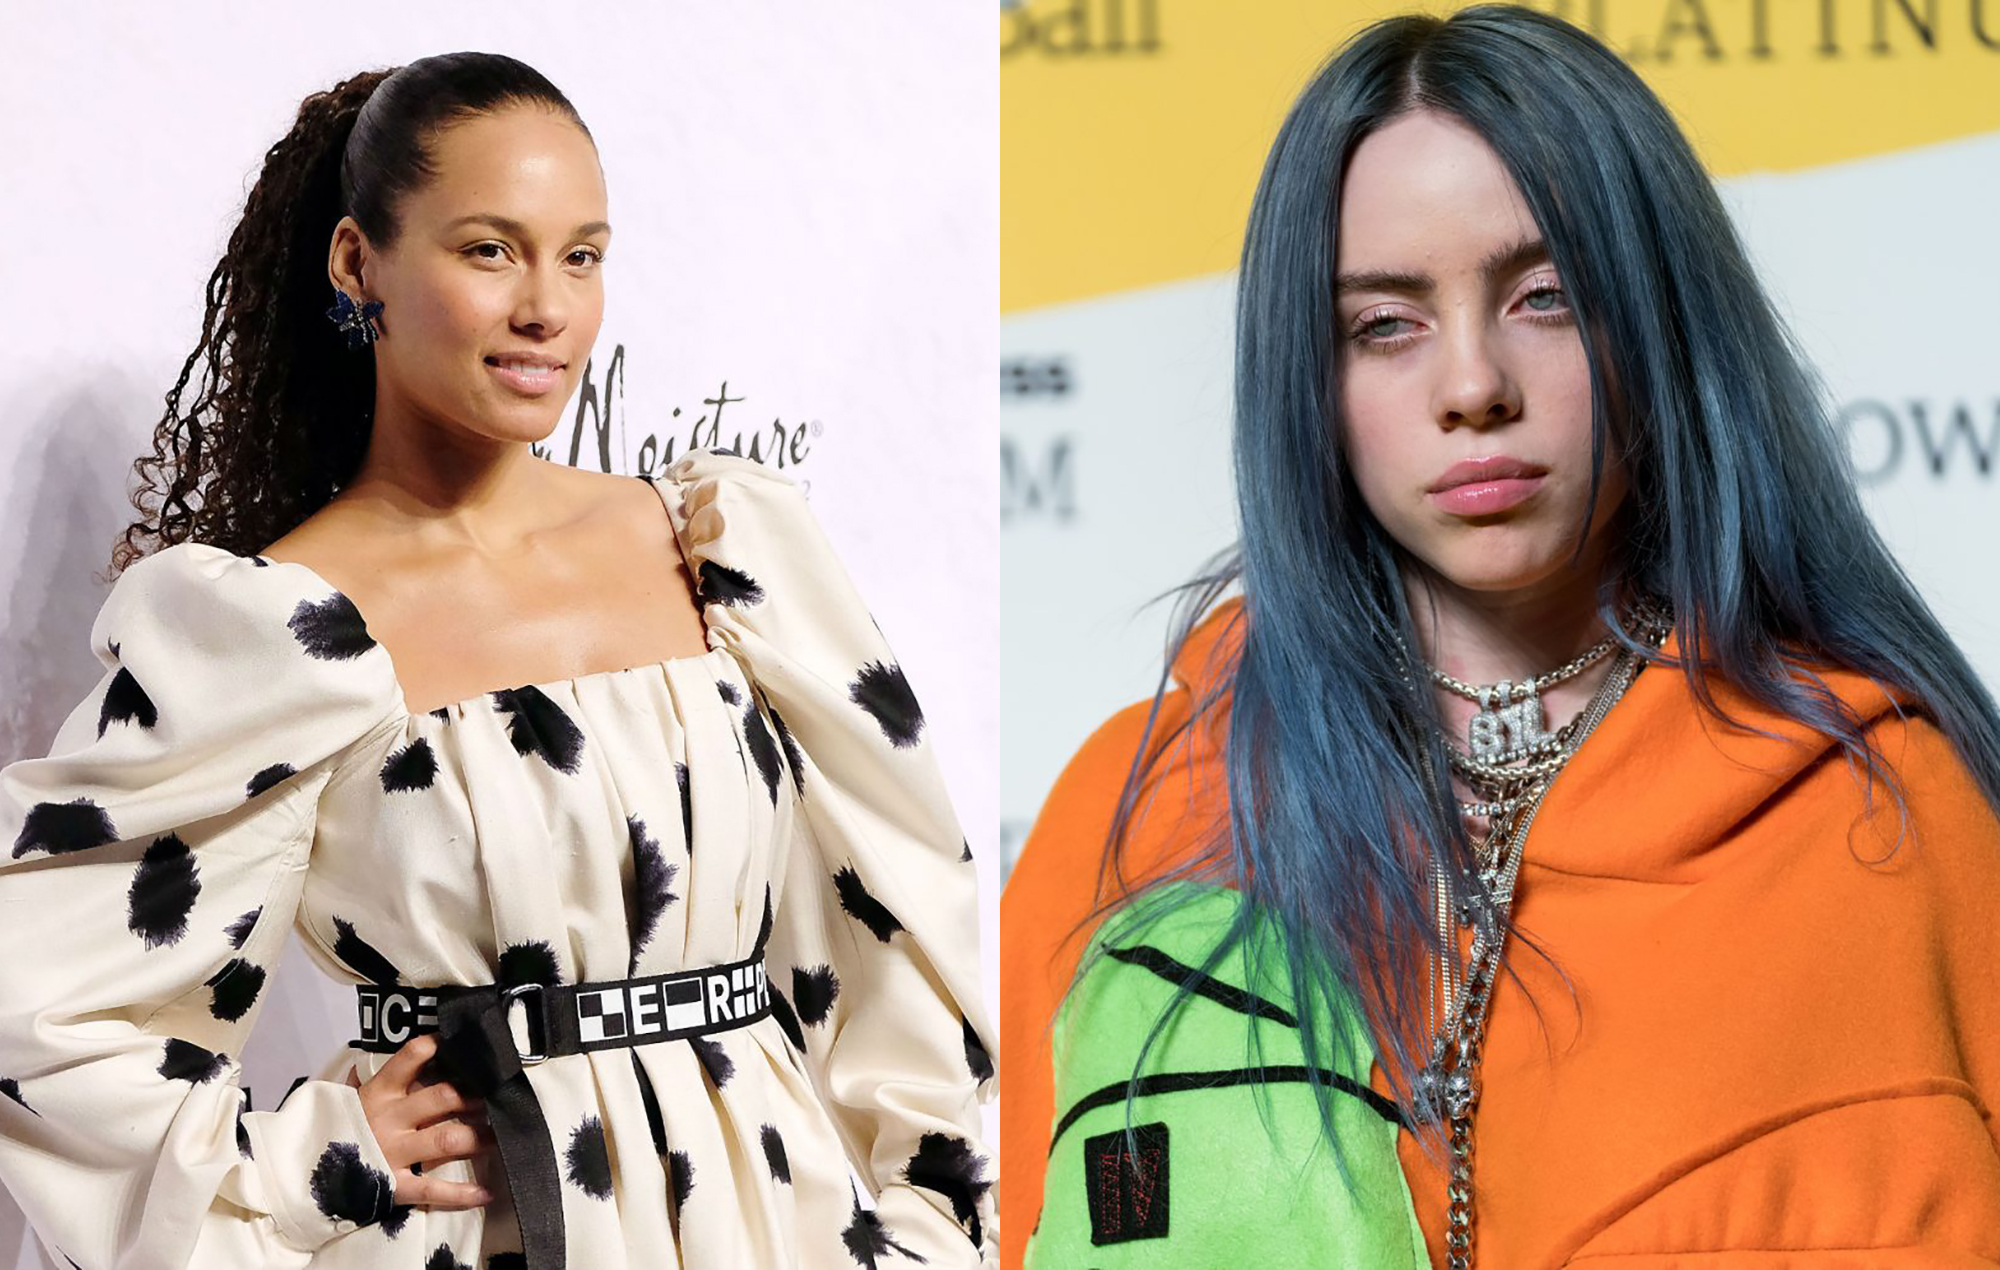 Alicia Keys covers Billie Eilish's Ocean Eyes